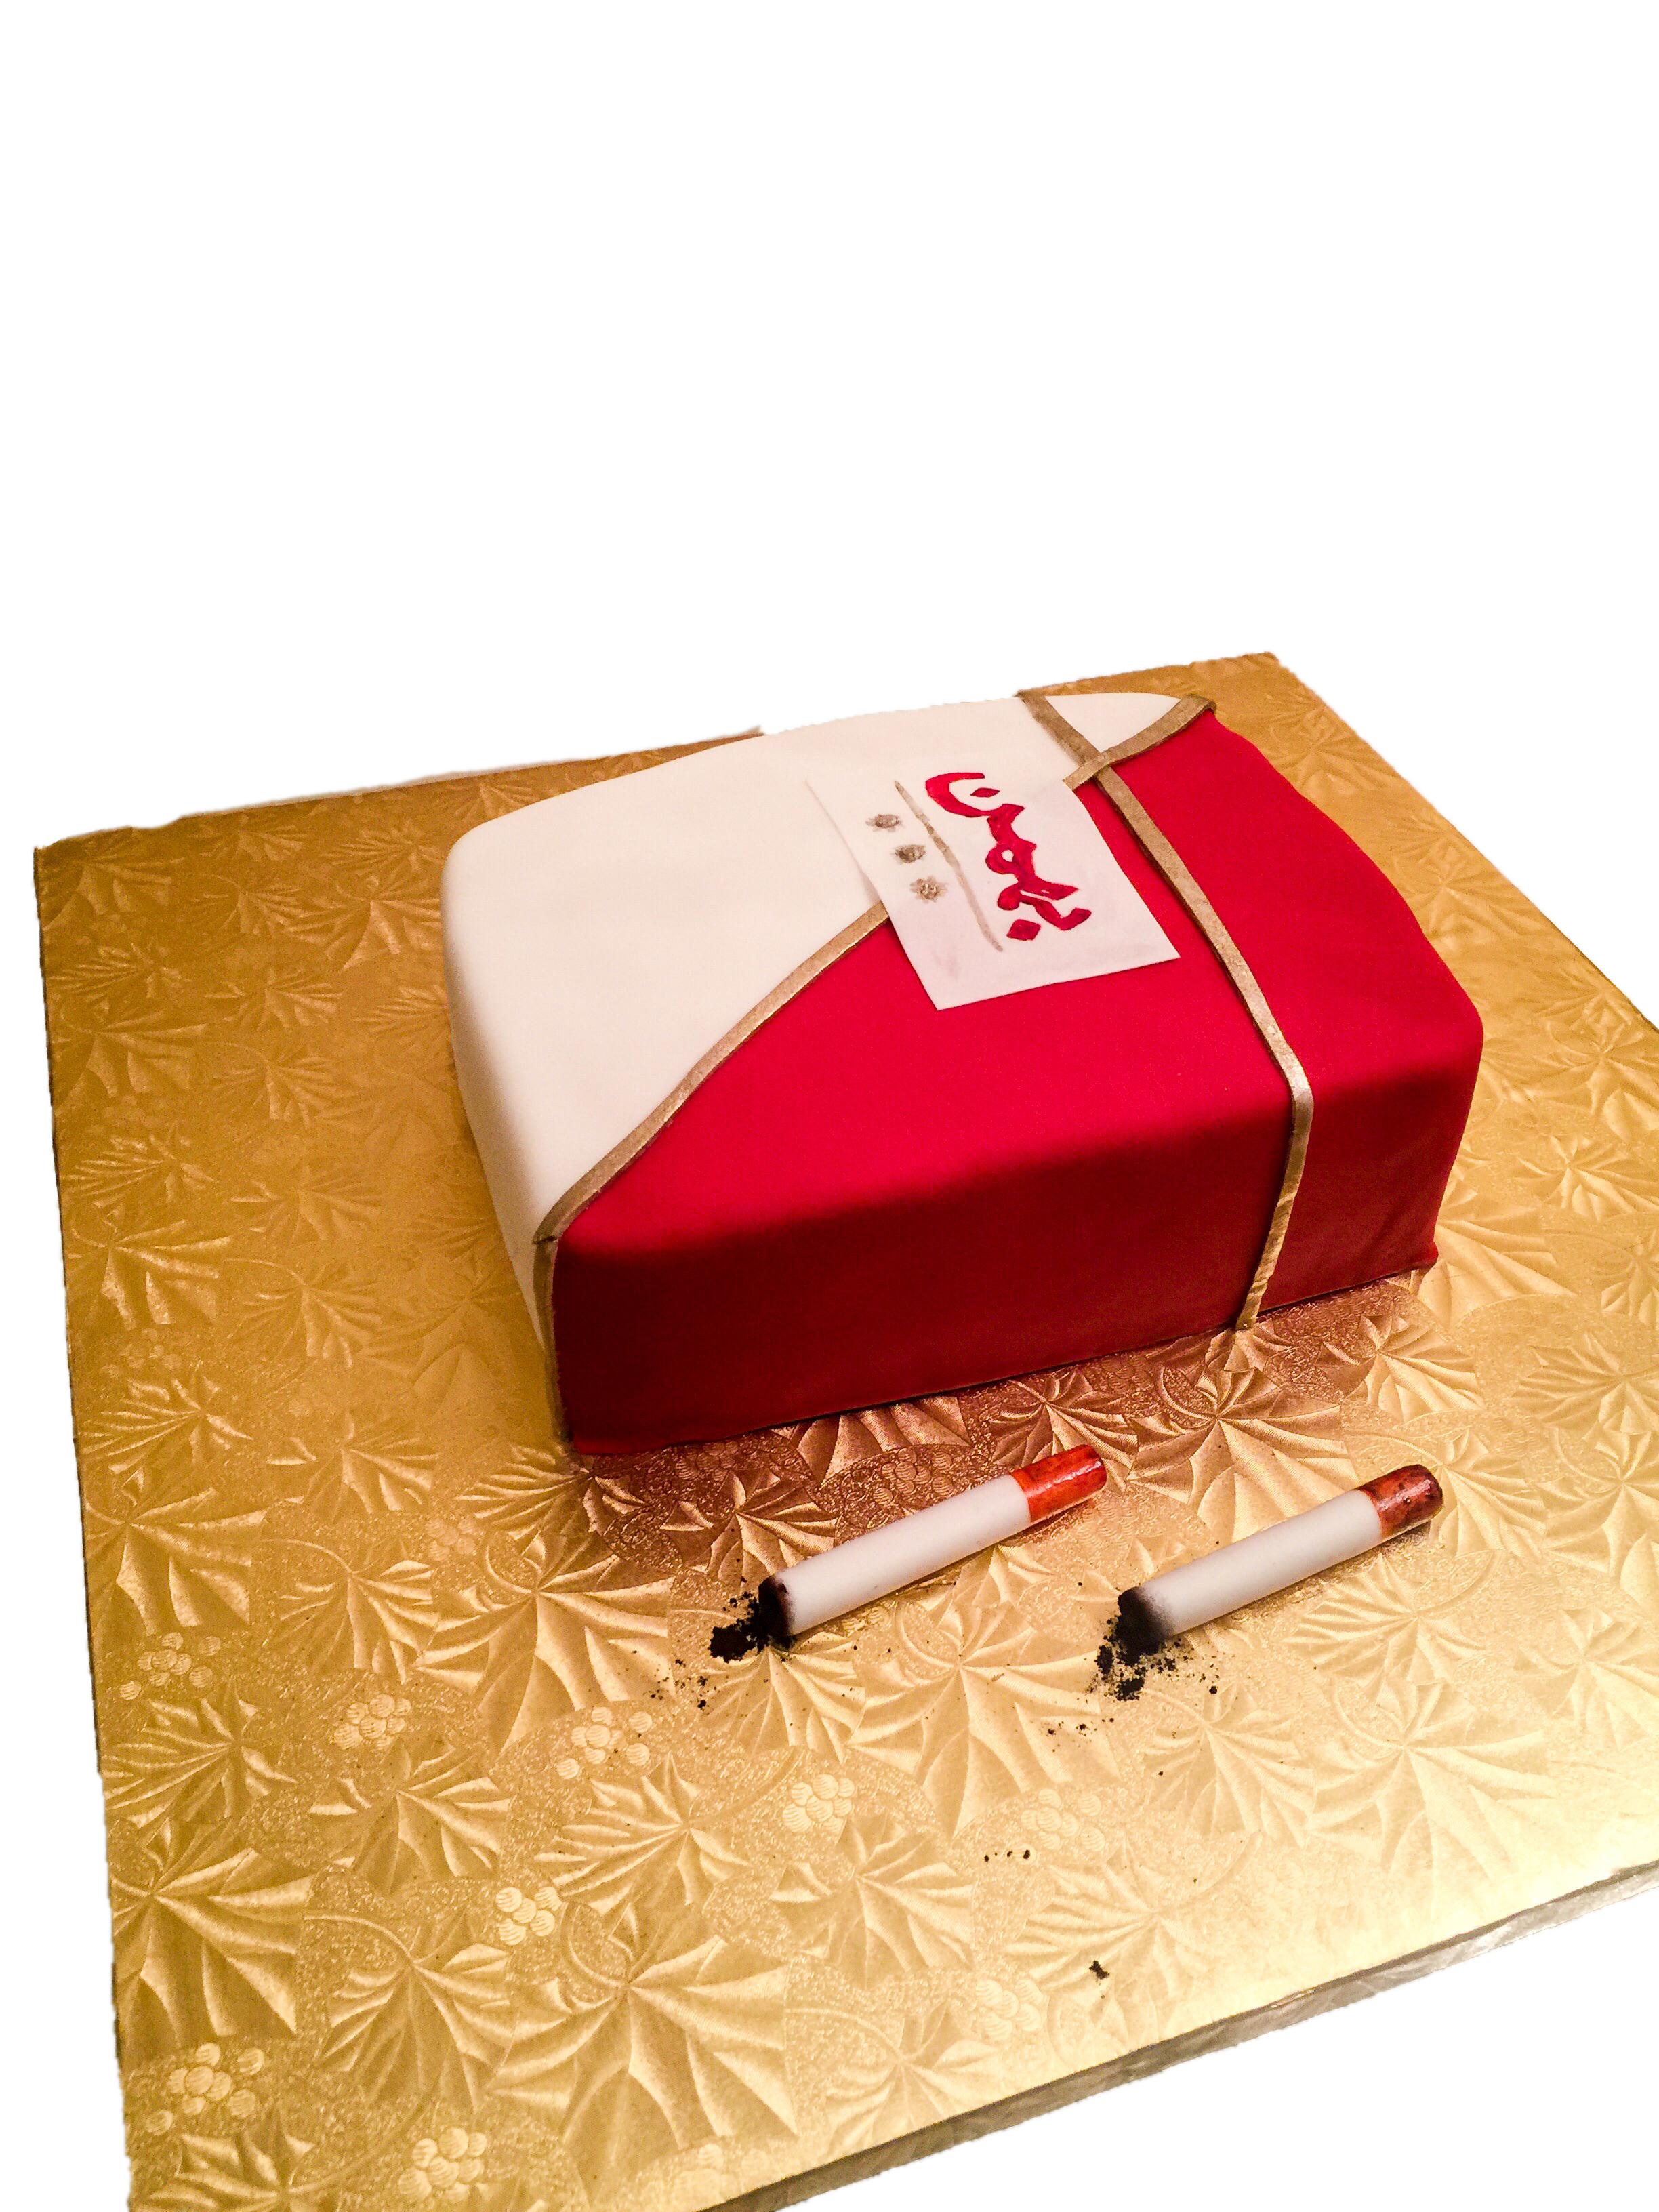 Foreign Cigarette Box Cake